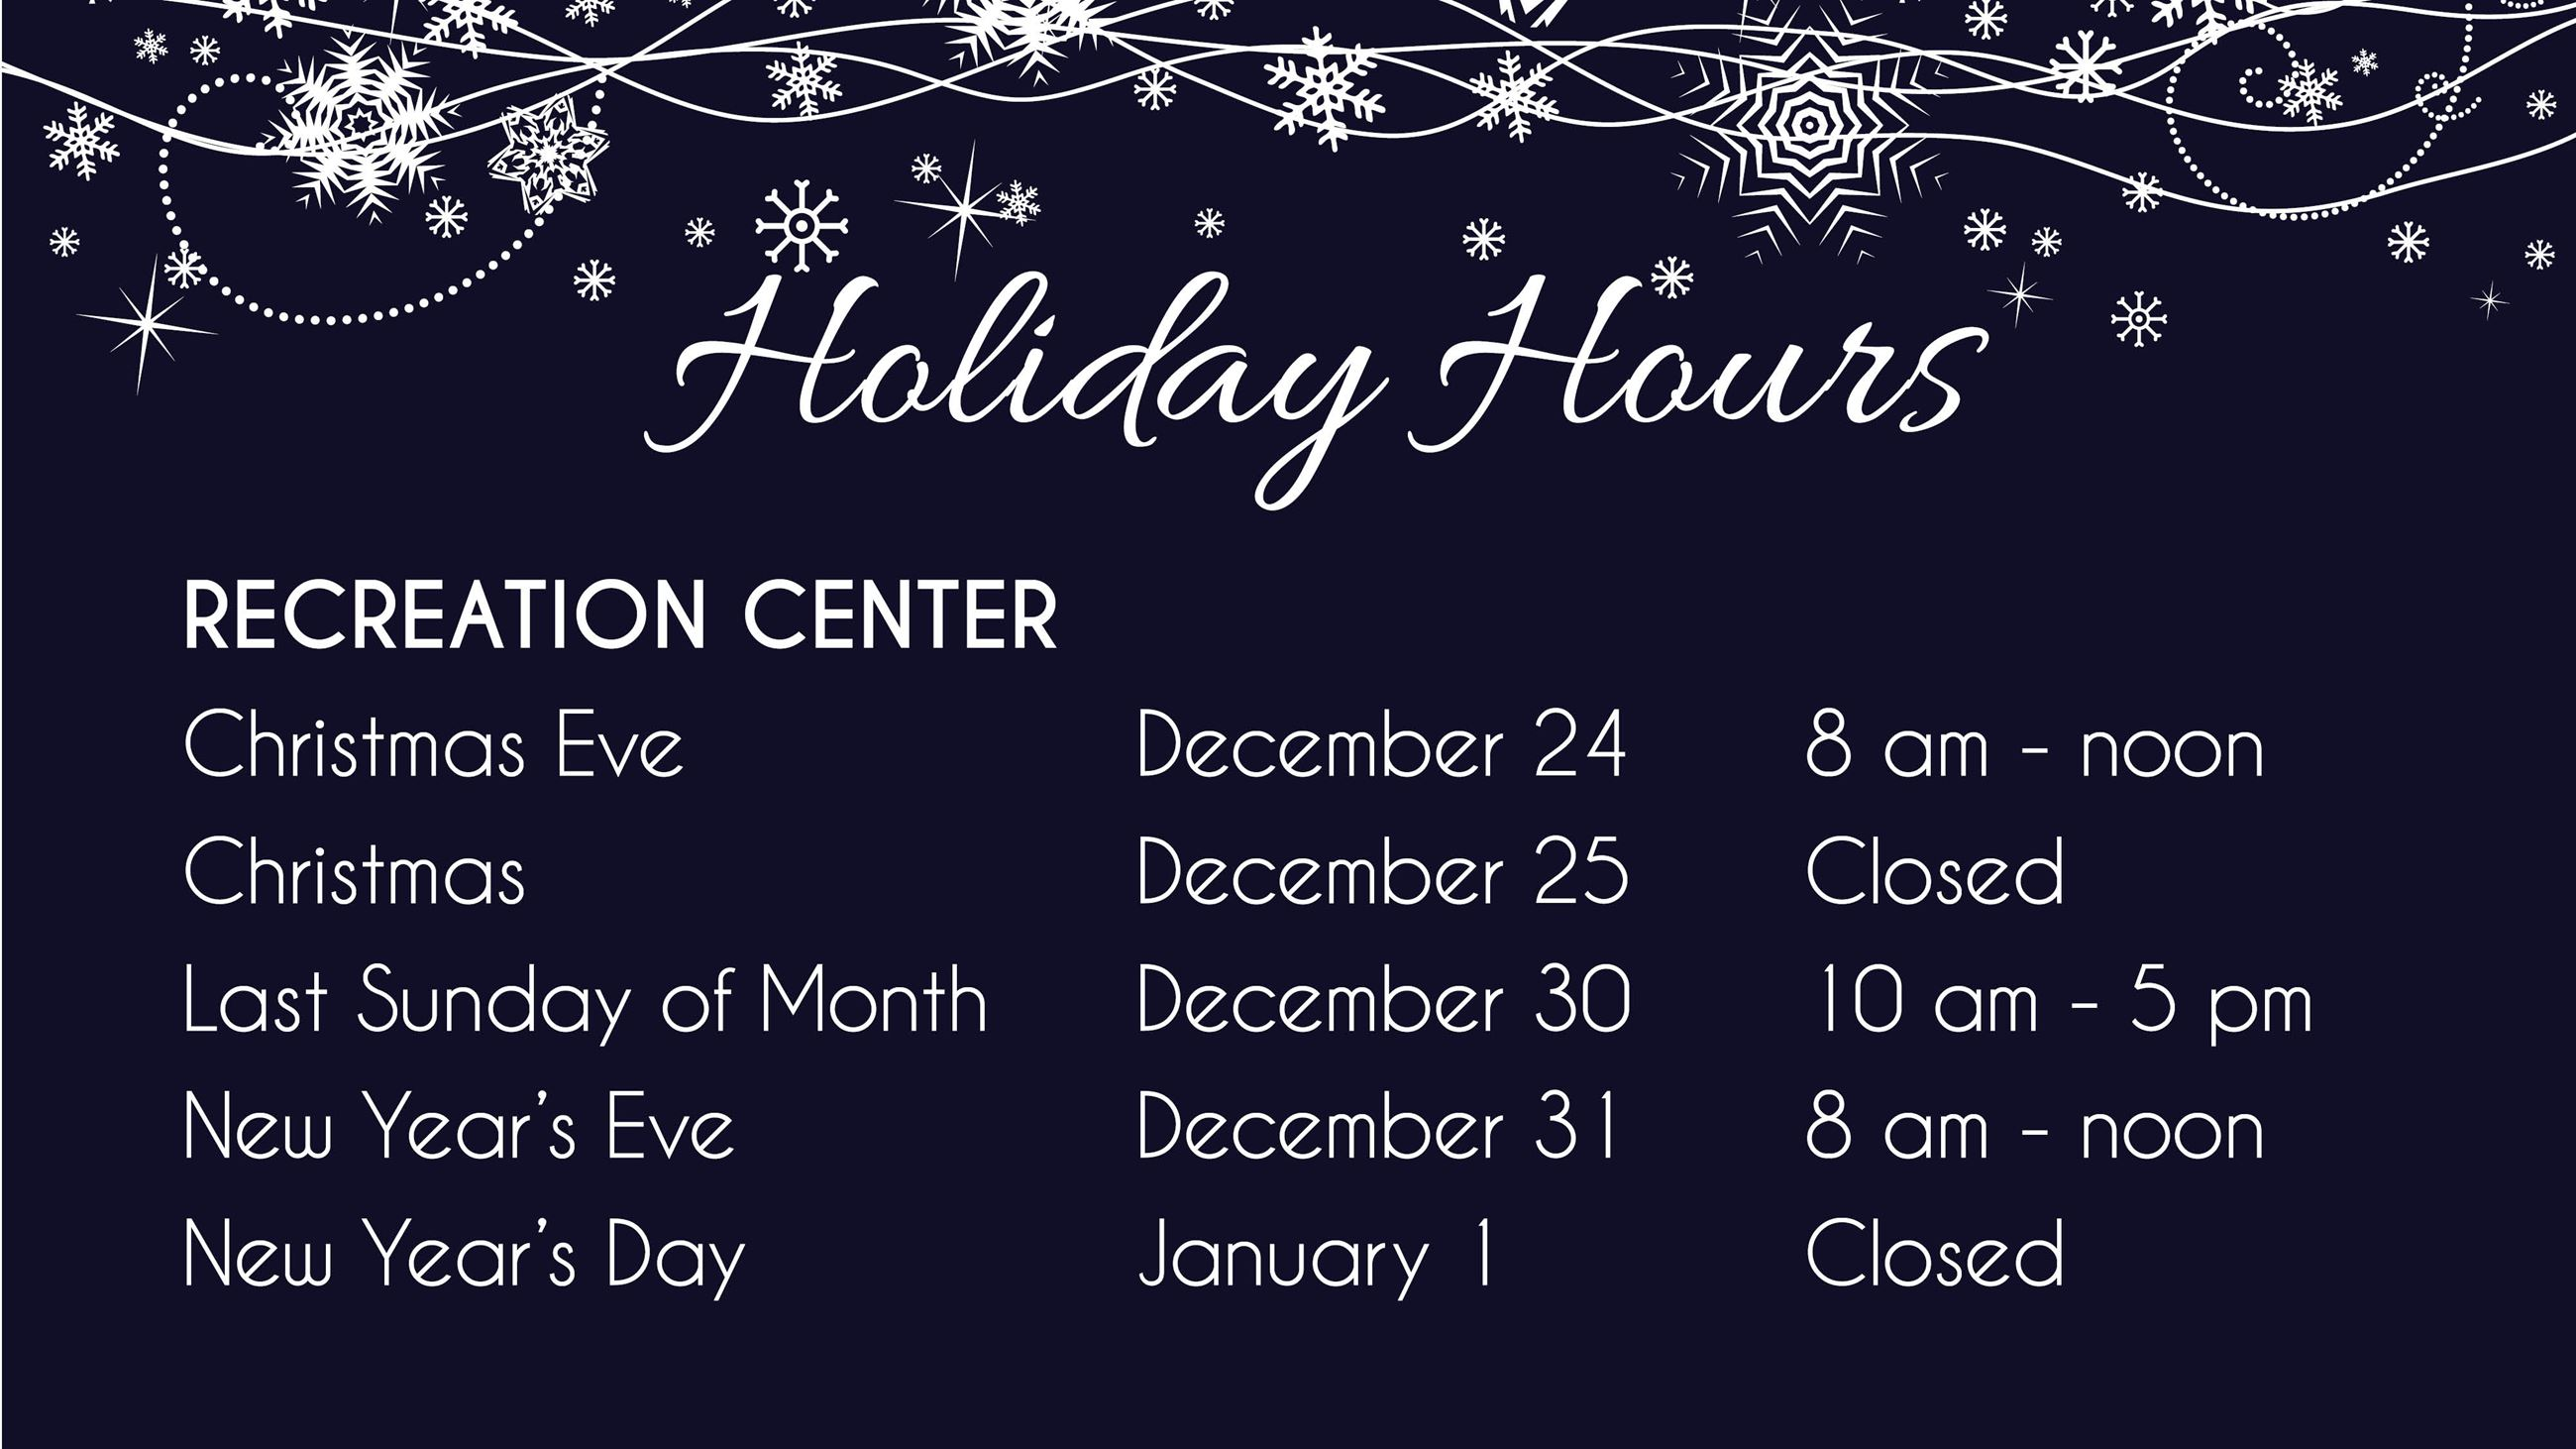 Holiday Hours Slide 2018